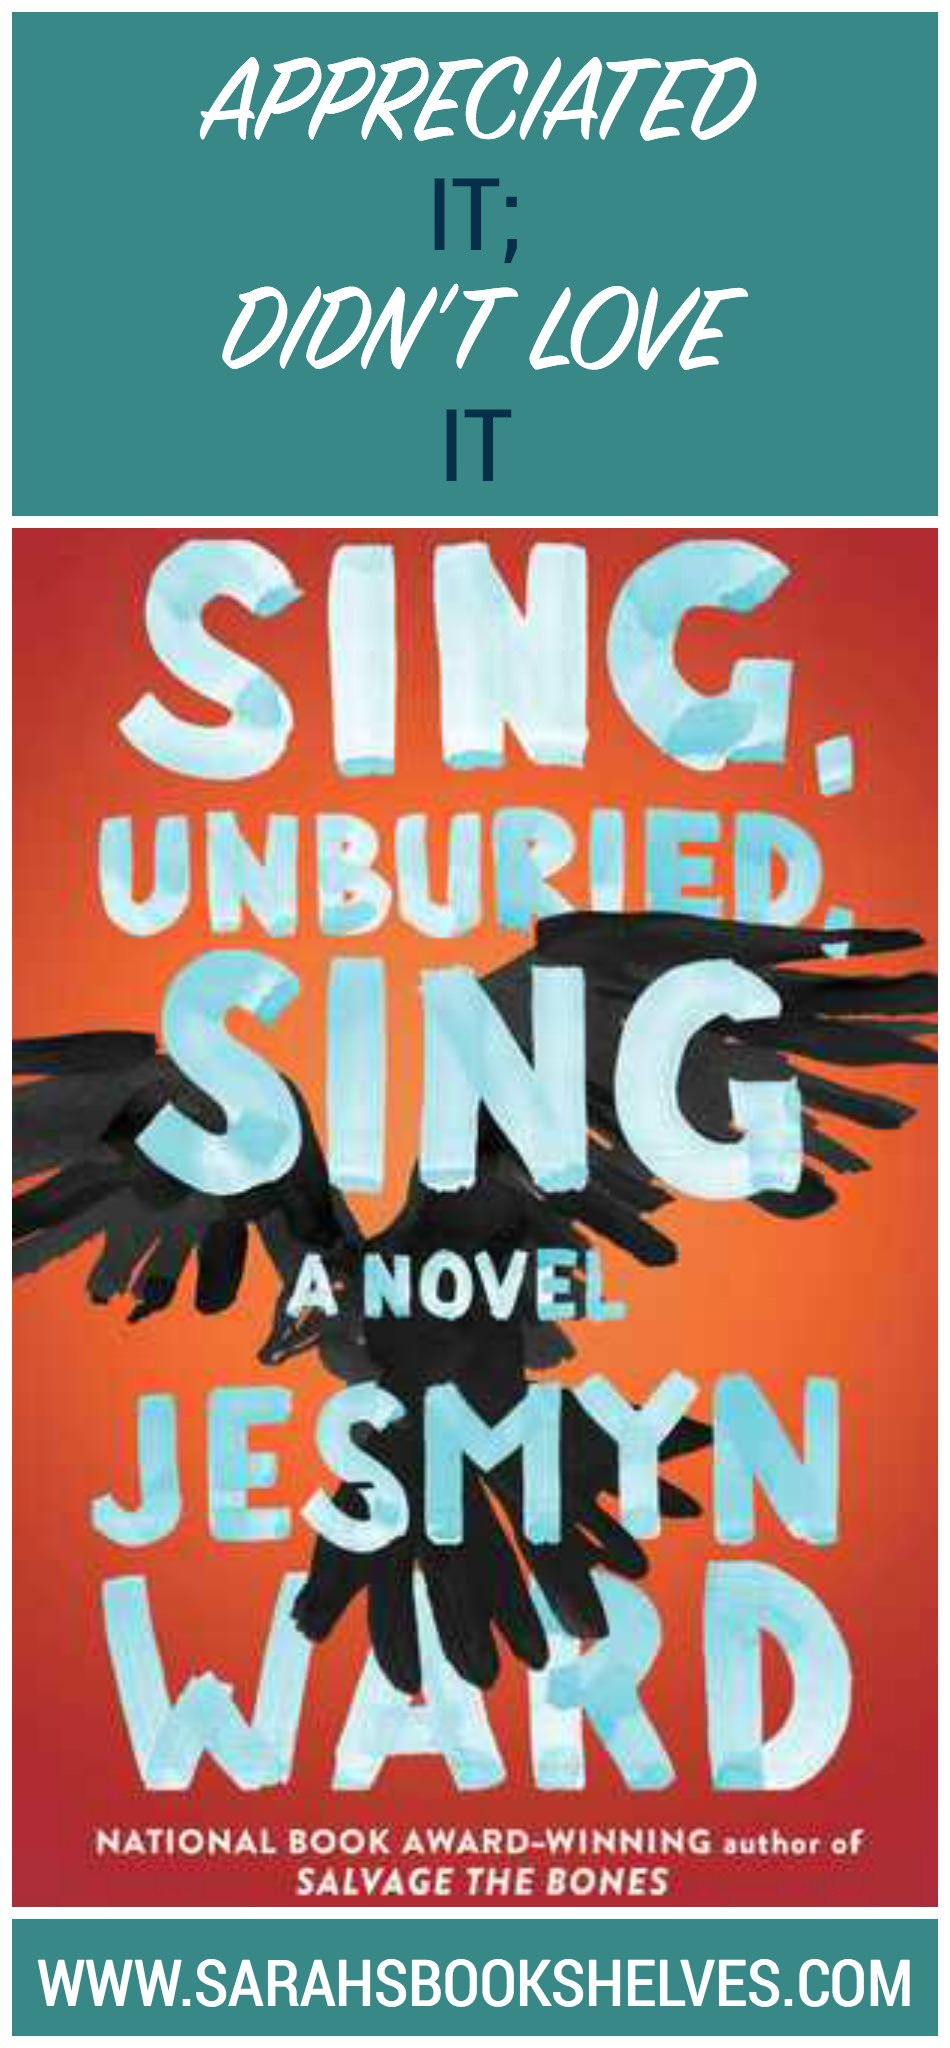 Book Review of Sing, Unburied, Sing by Jesmyn Ward: Though I can see why the critics love Sing, Unburied, Sing, I didn't particularly enjoy reading it and had trouble connecting with the story. #bookreviews #book #bookish #bookworms #booklovers #reading #bookreview2017